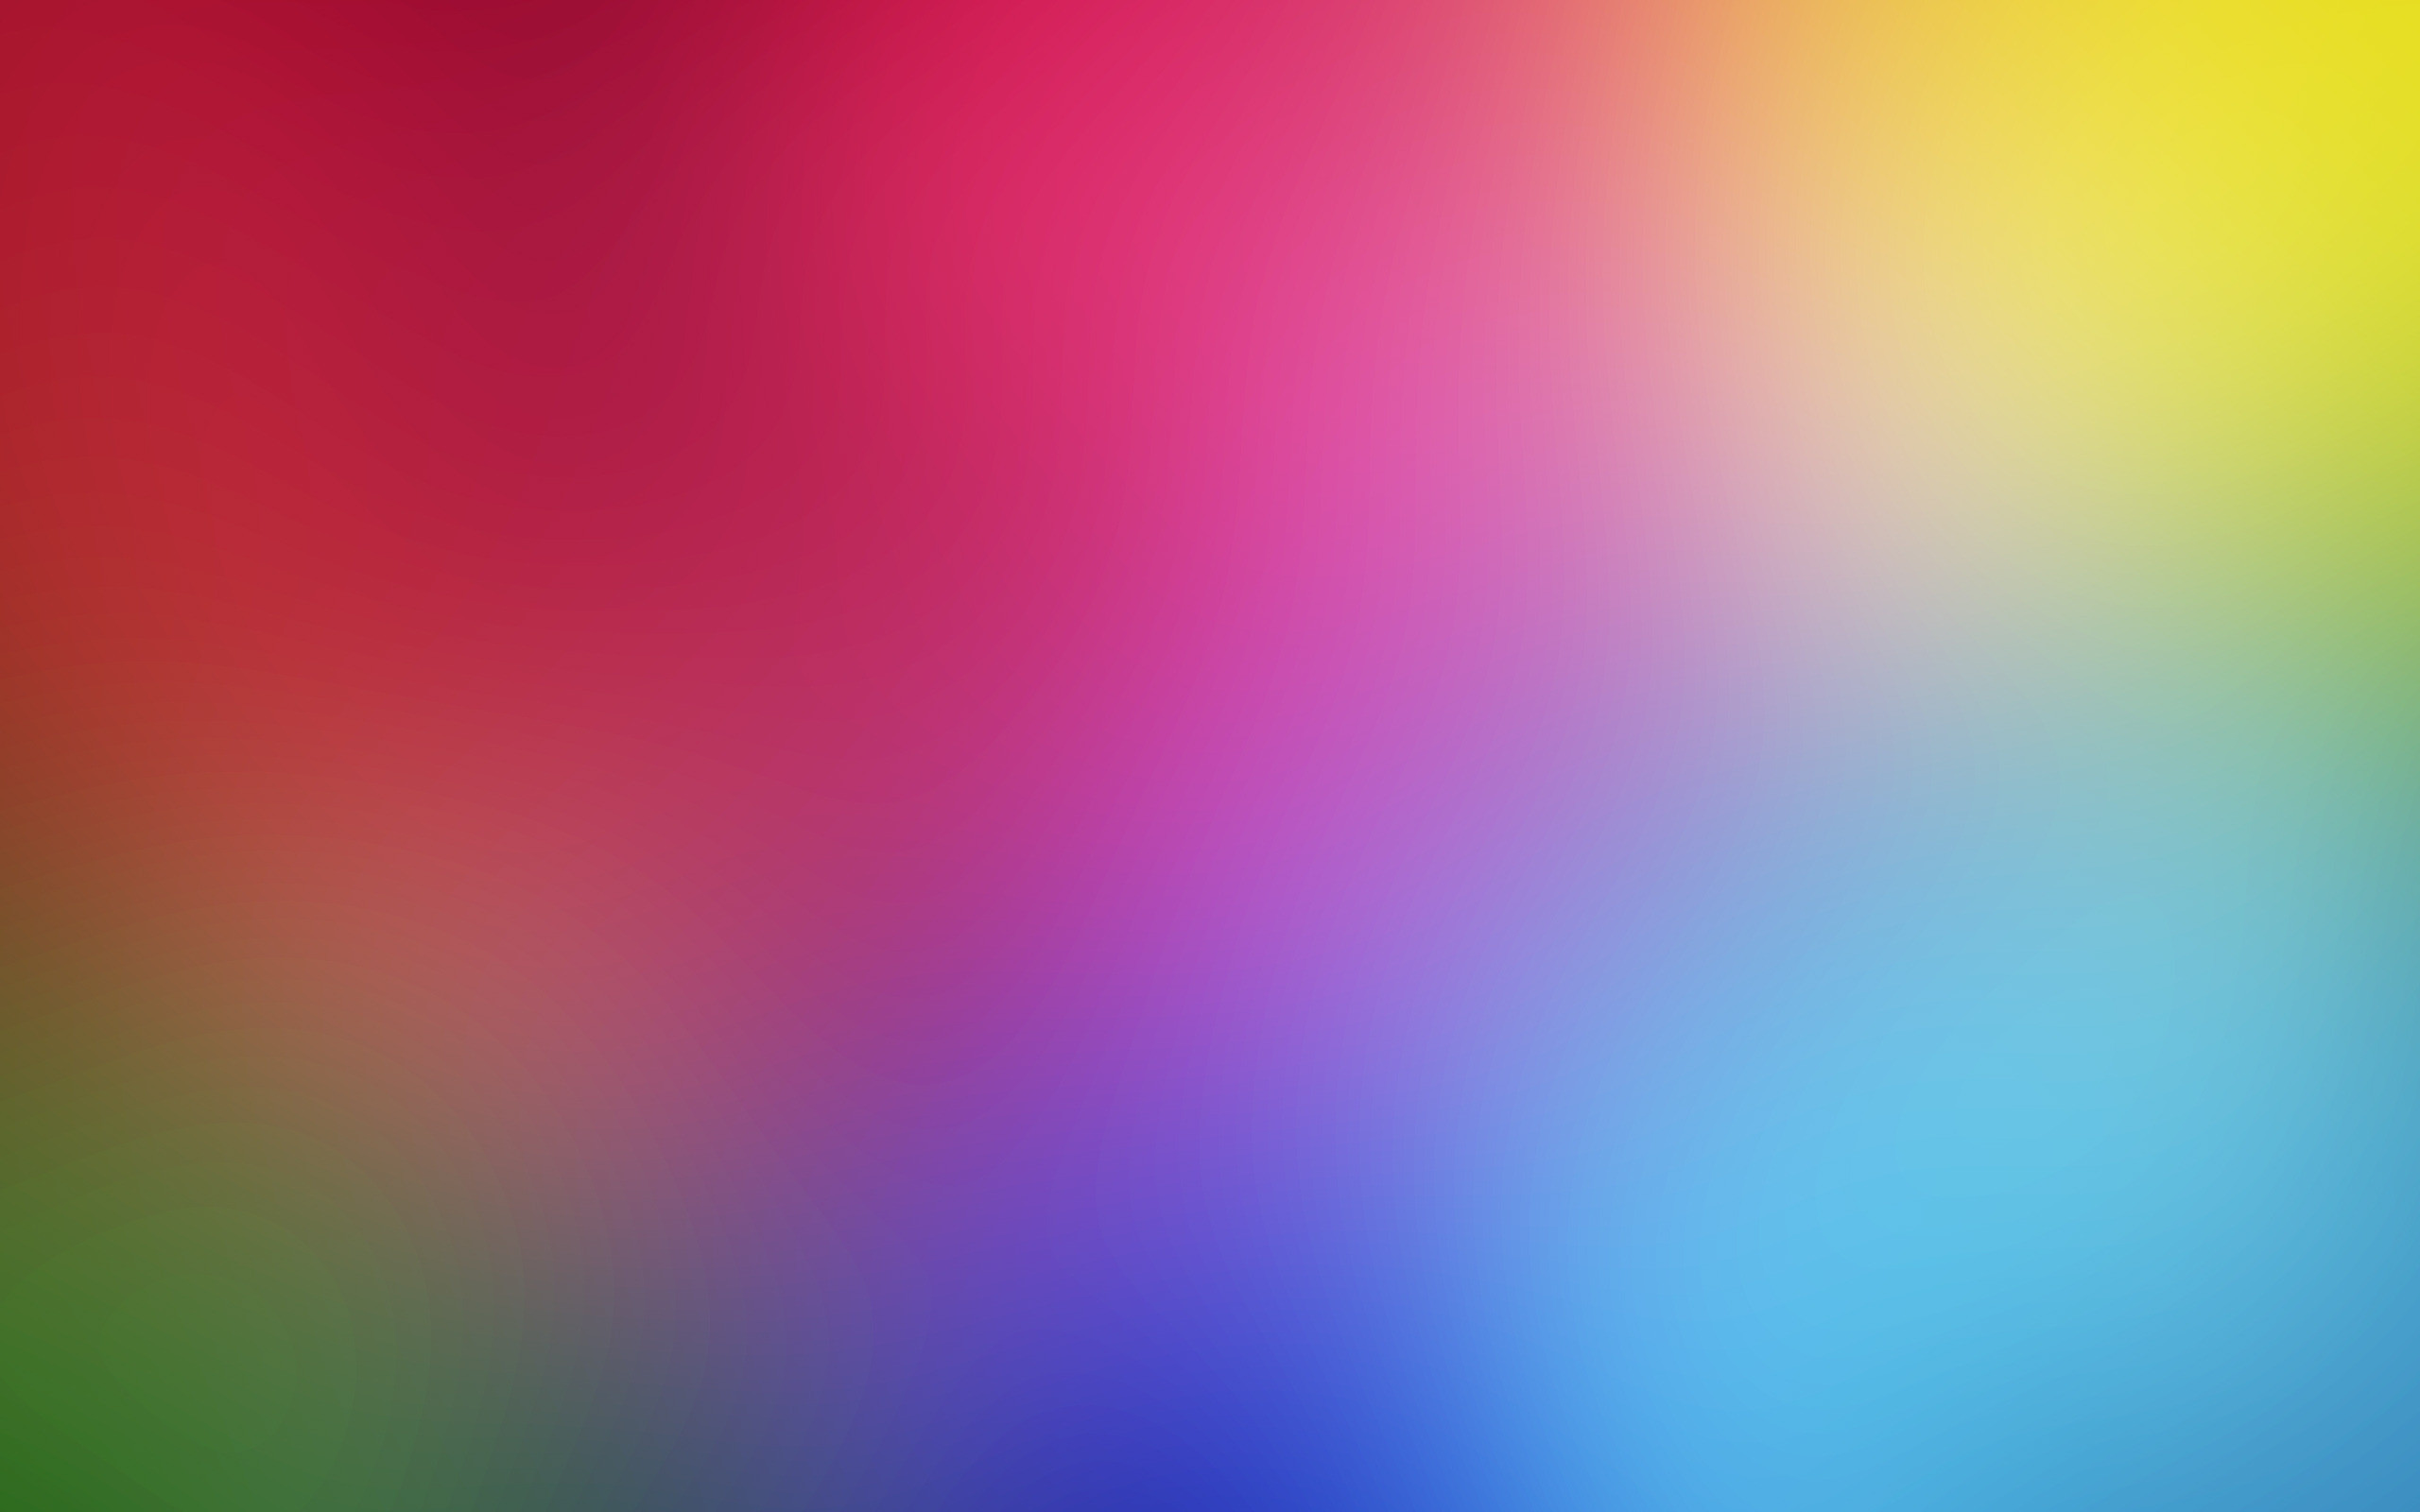 Multi Color Background (56+ images)